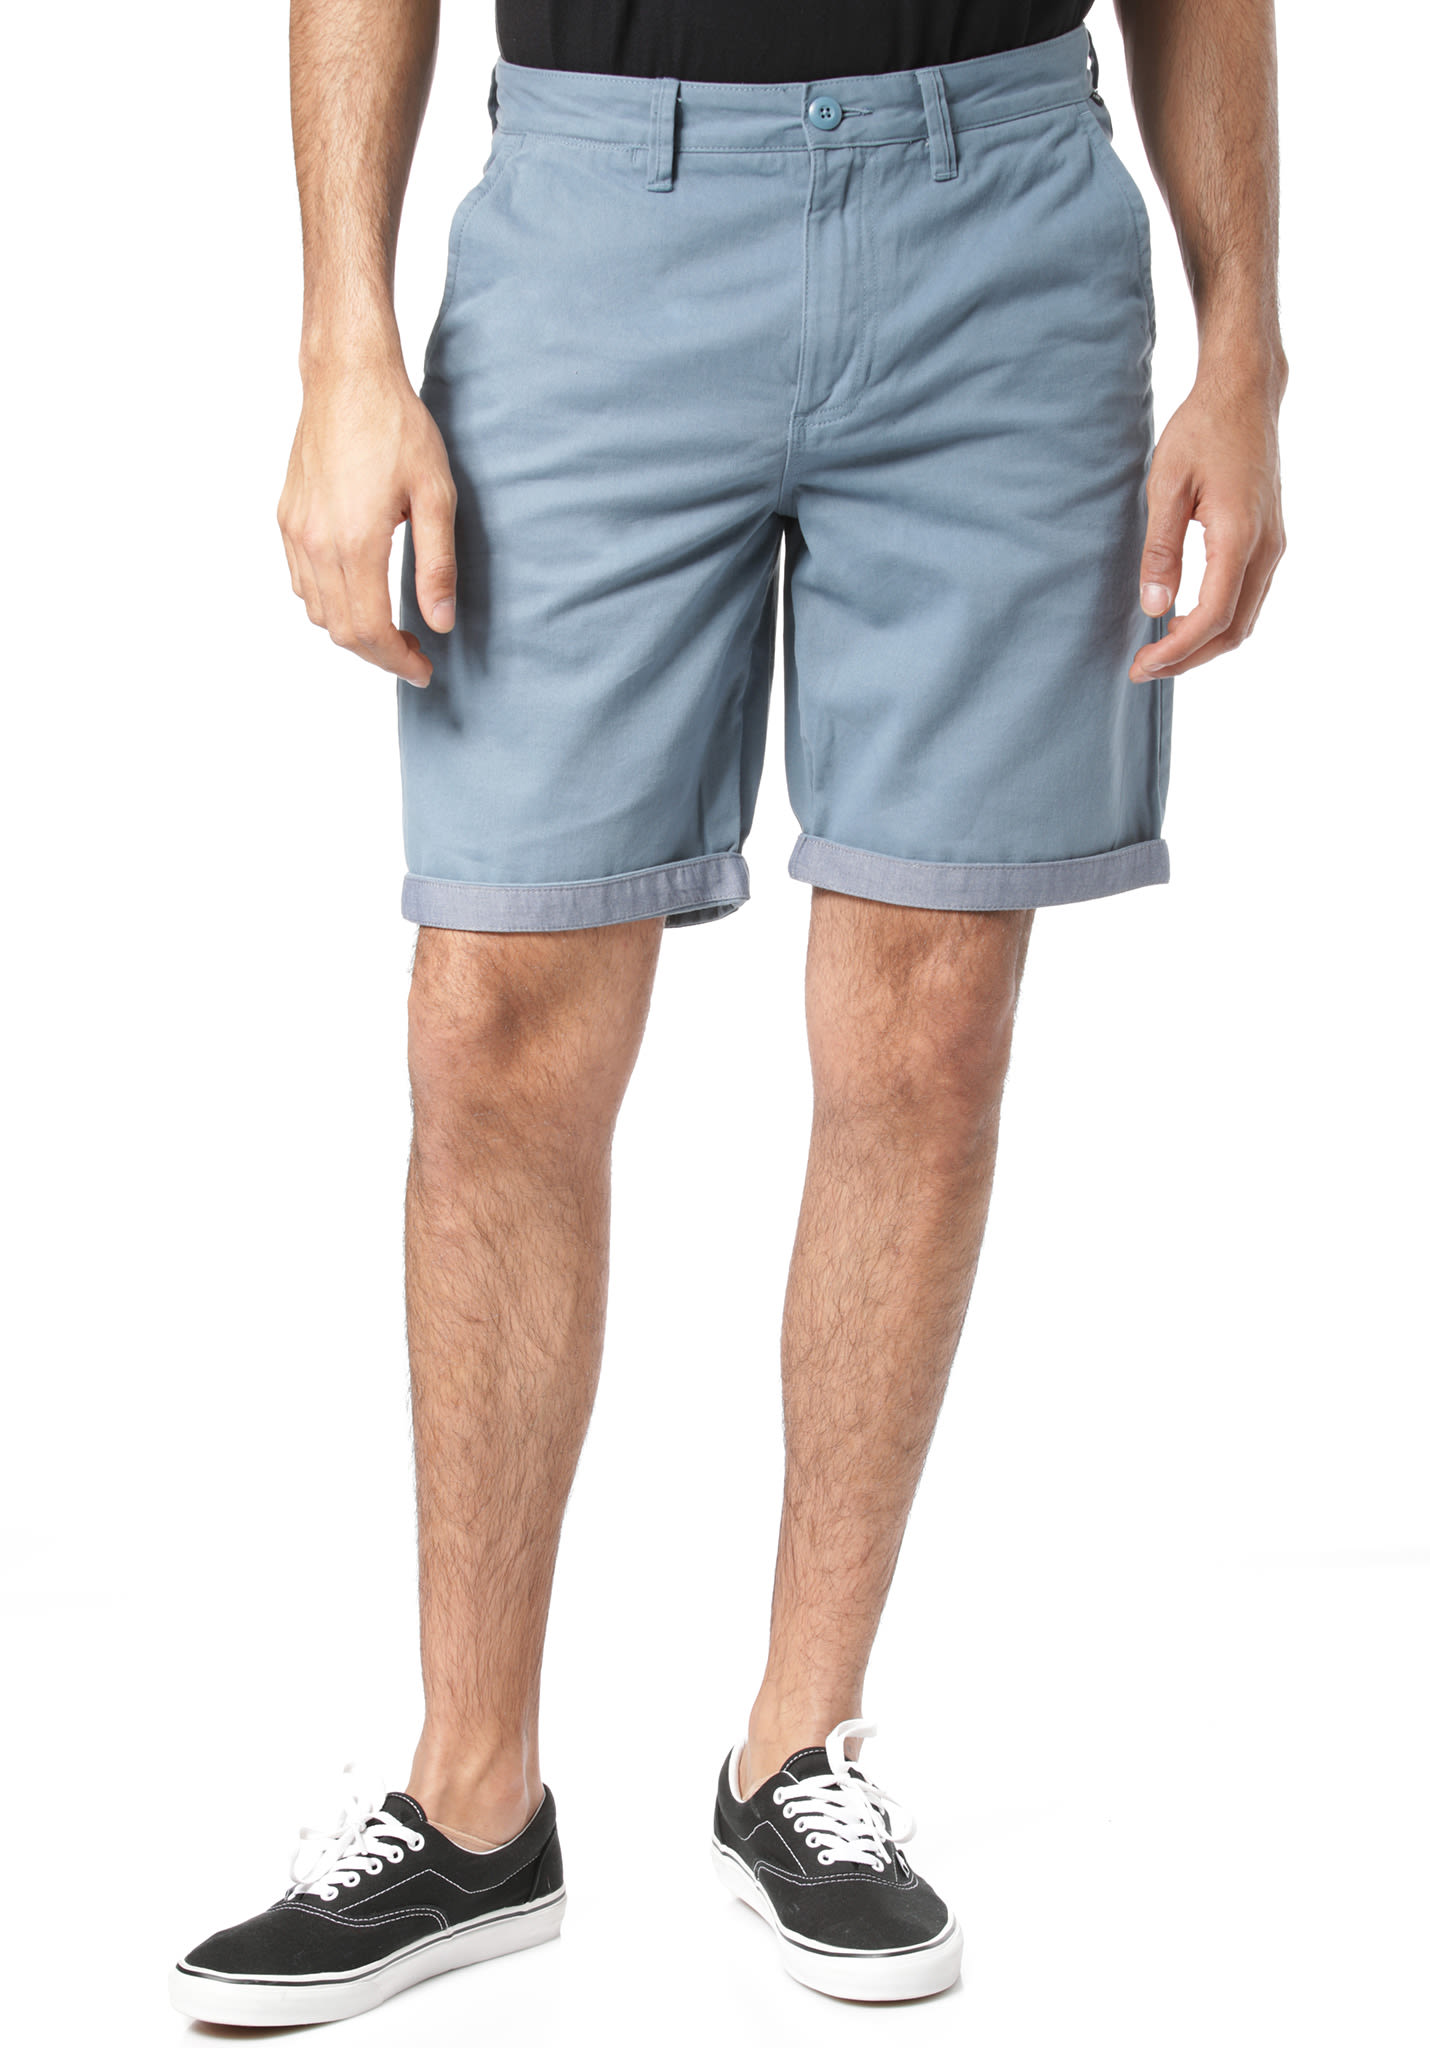 VANS Authentic Cuff Shorts für Herren Blau